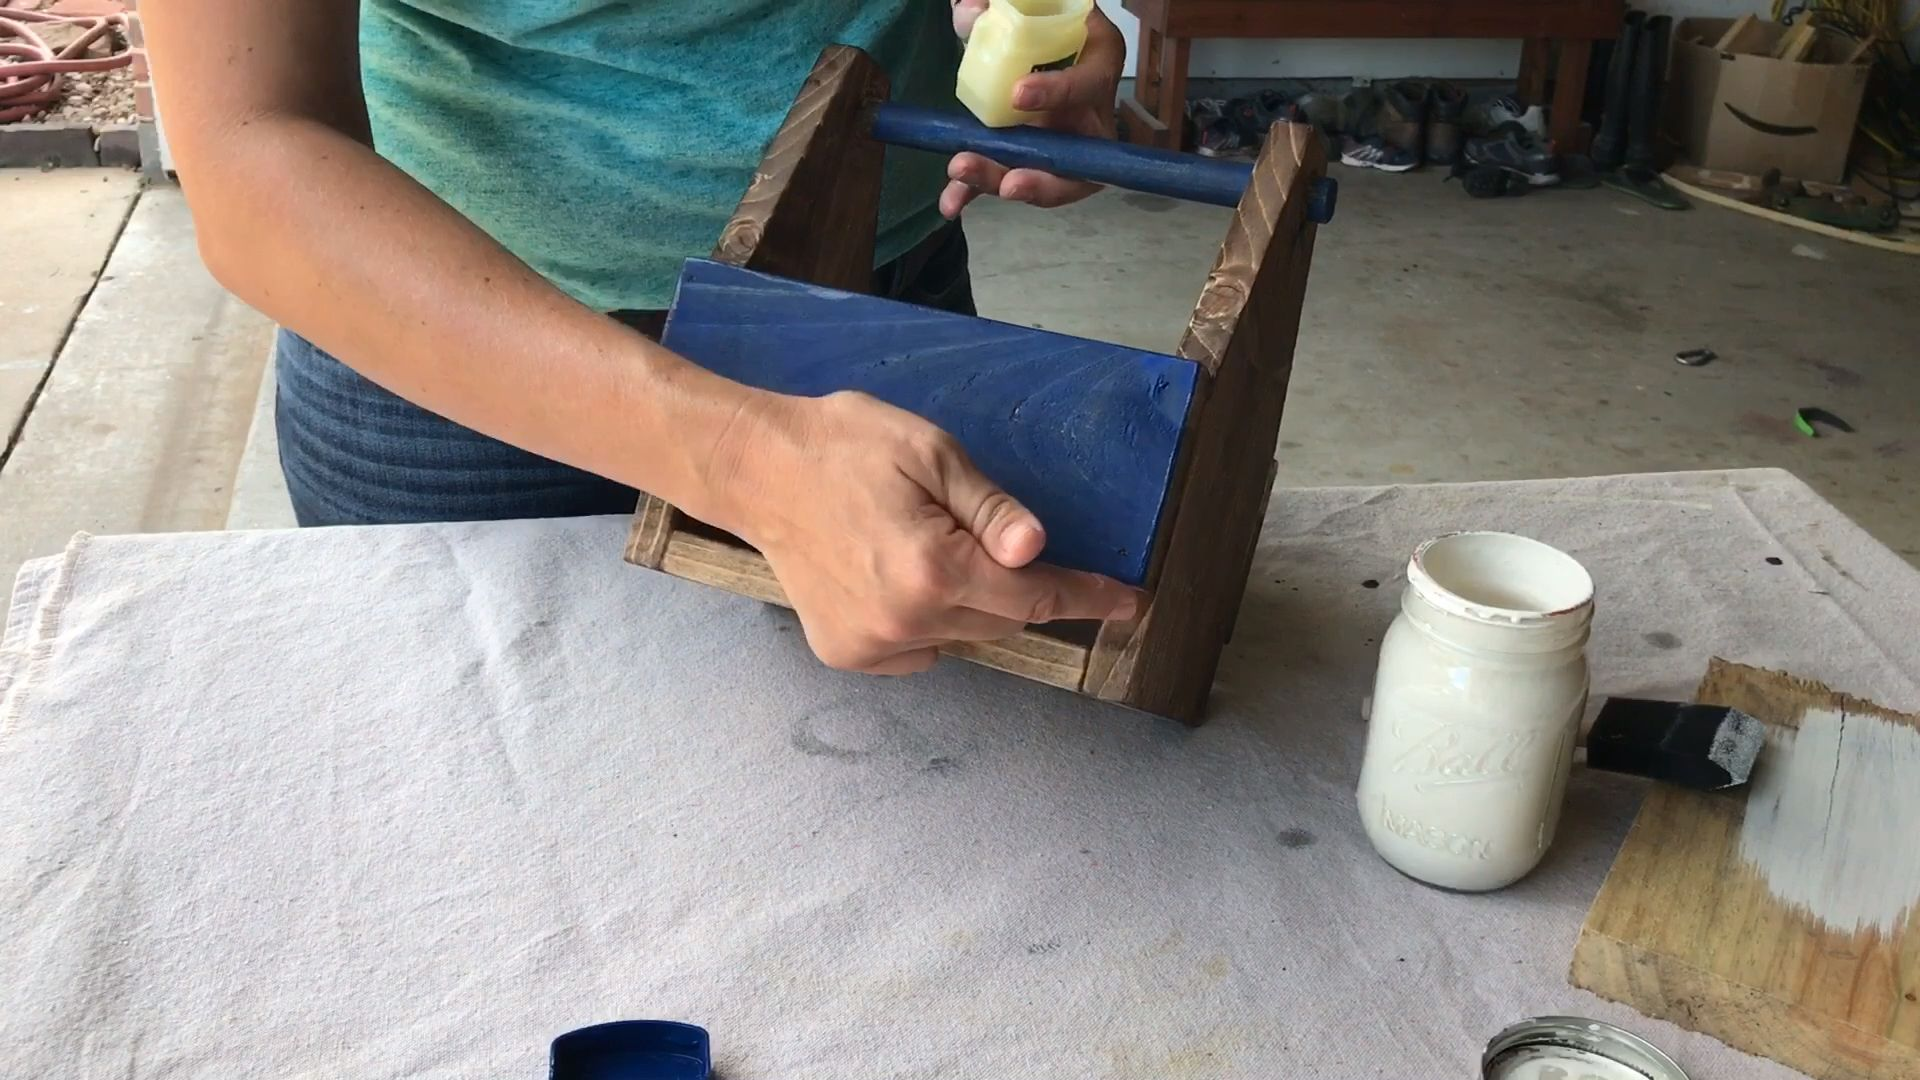 How to Paint and Distress Furniture Perfectly! is part of Distressed furniture painting, Diy furniture videos, Distressed furniture diy, Distressed furniture, Paint furniture, Refinishing furniture - Want to know how to paint and distress furniture perfectly, every time  There's 1 simple ingredient I use to make distressing quick and easy  So, stop sanding all day and try